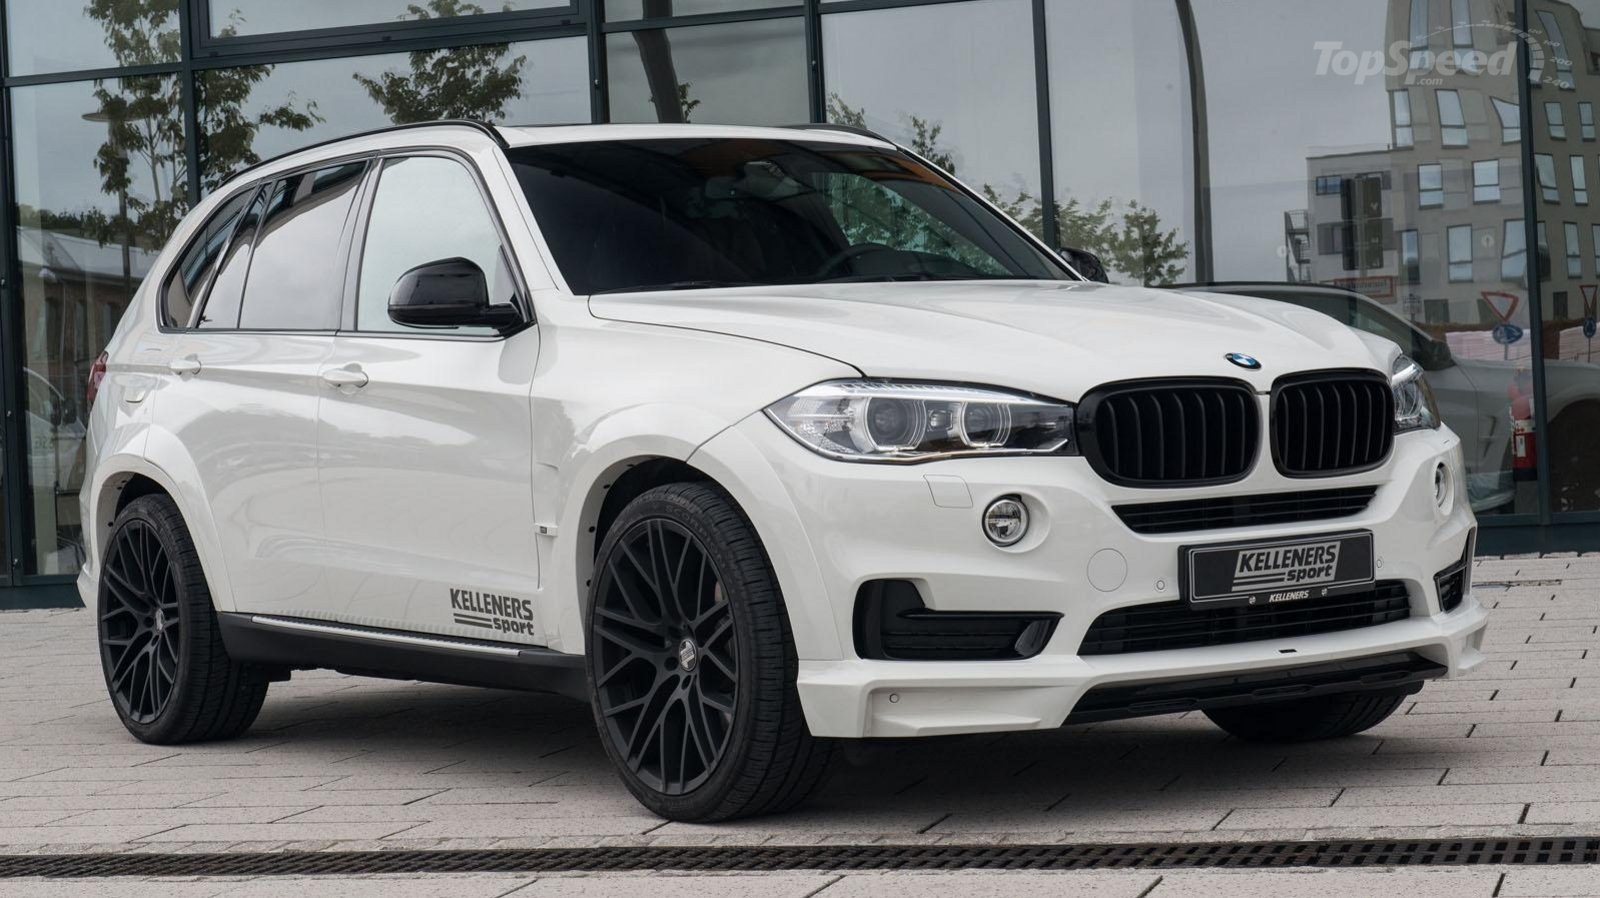 2014 bmw x5 by kelleners sport review top speed. Black Bedroom Furniture Sets. Home Design Ideas